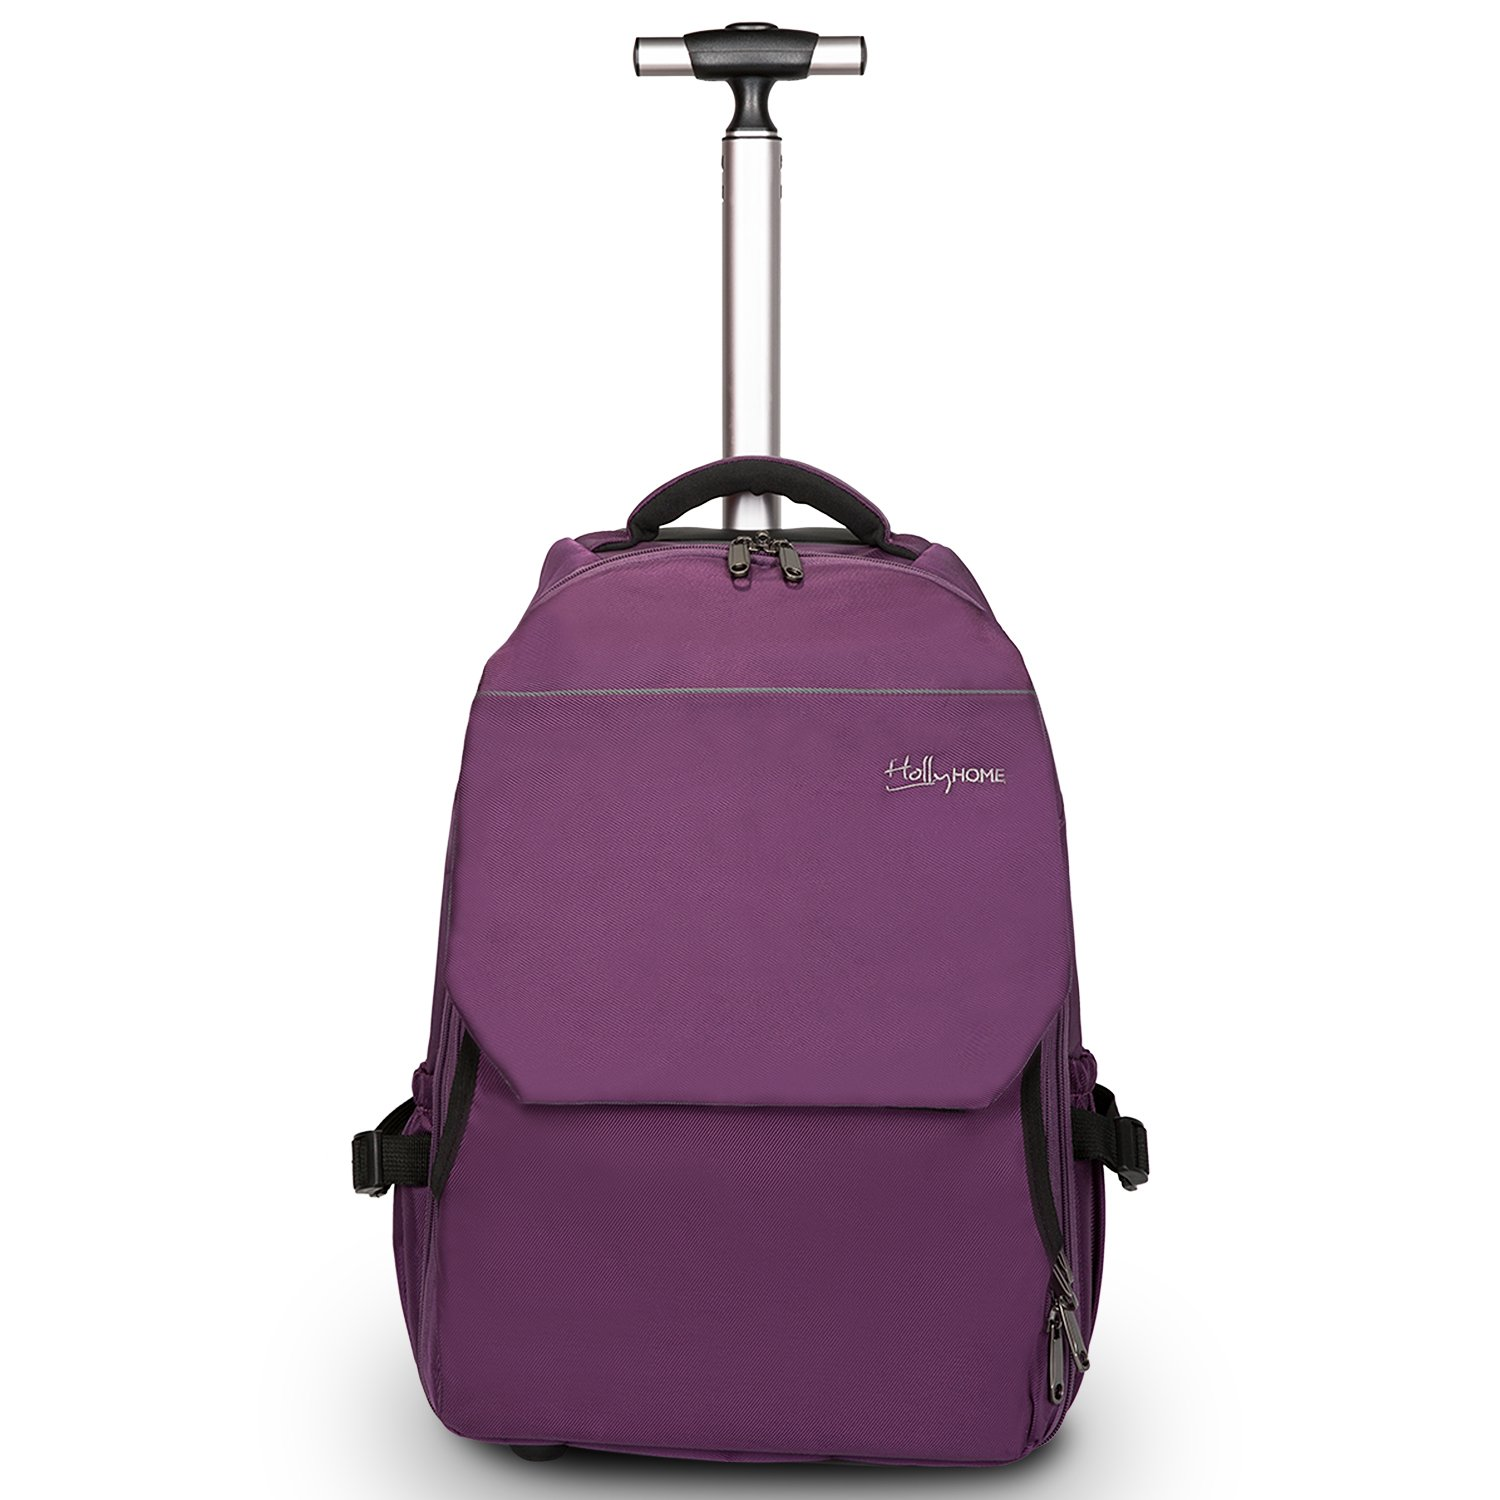 19 inches Large Storage Multifunction Waterproof Travel Wheeled Rolling Backpack by HollyHOME, Purple by HollyHOME